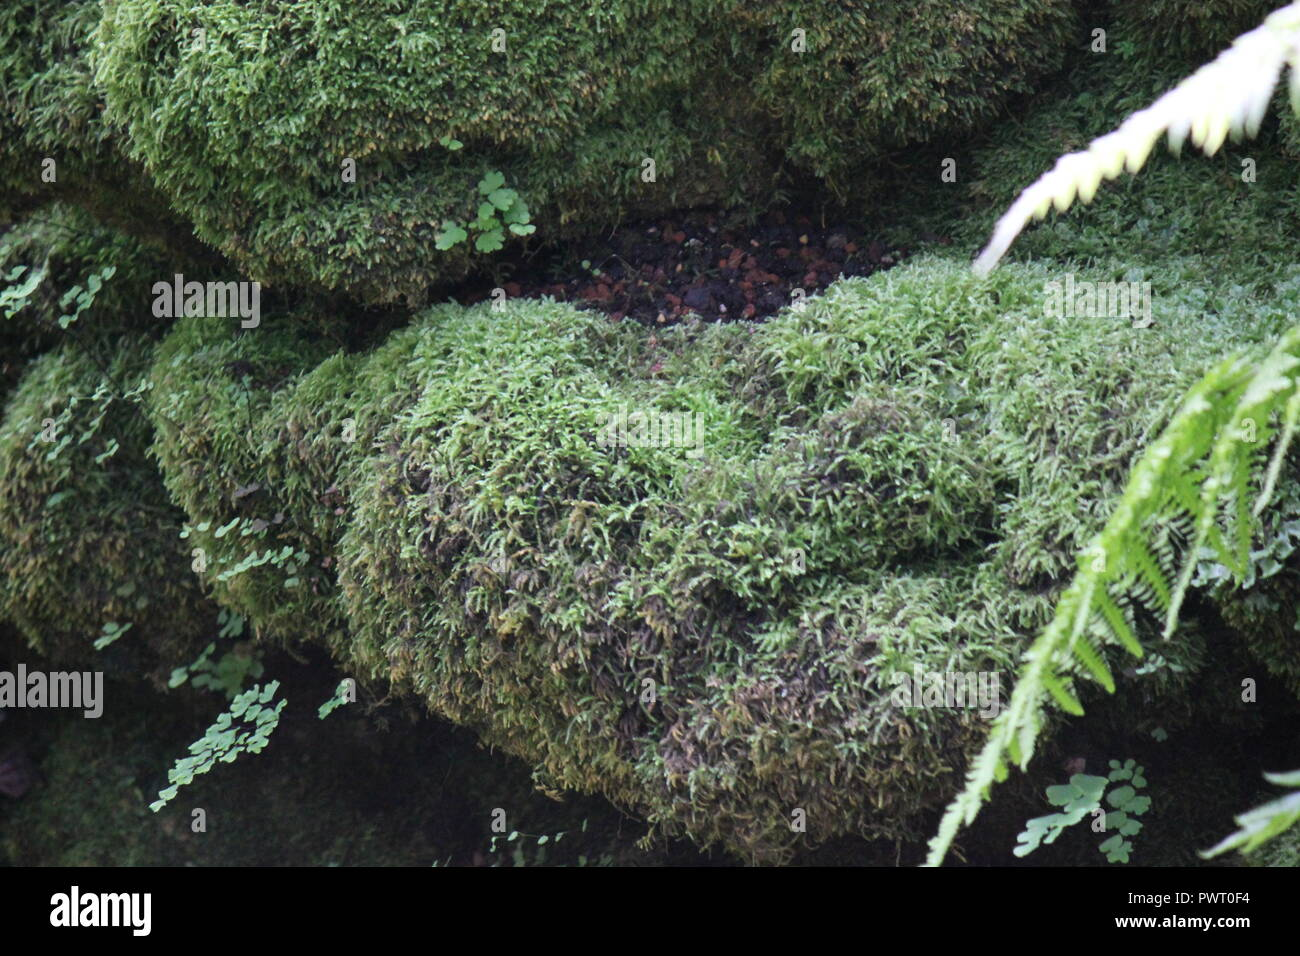 Green moss, Bryophyta, covered rock stone at the Garfield Park Conservatory in Chicago, Illinois. - Stock Image